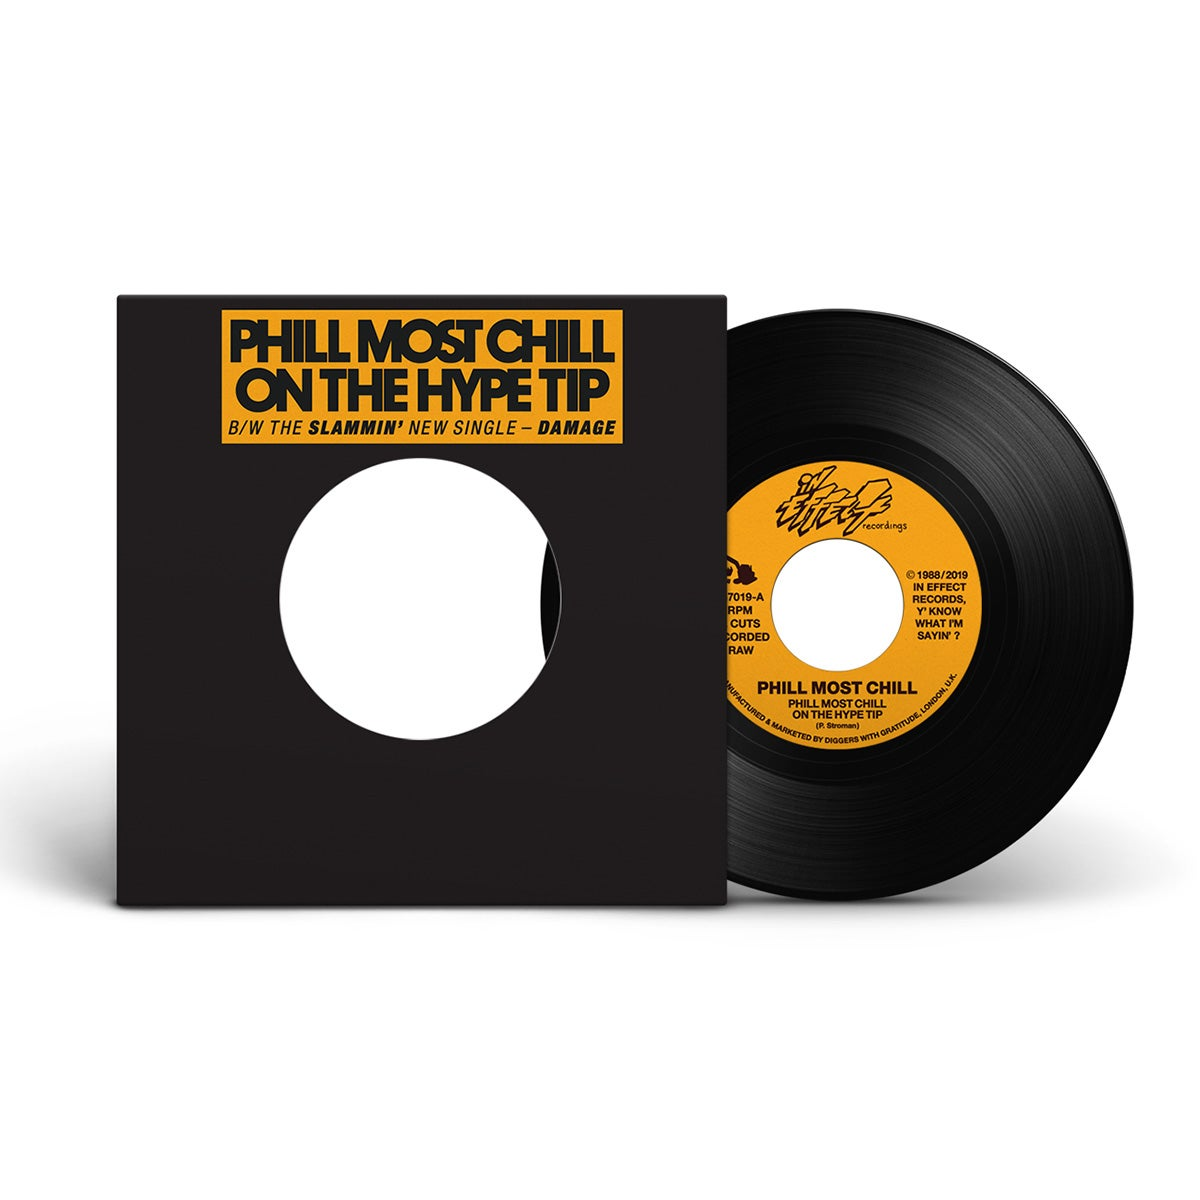 "Image of Phill Most Chill - Phill Most Chill On The Hype Tip / Damage 7"" (2 copies)"